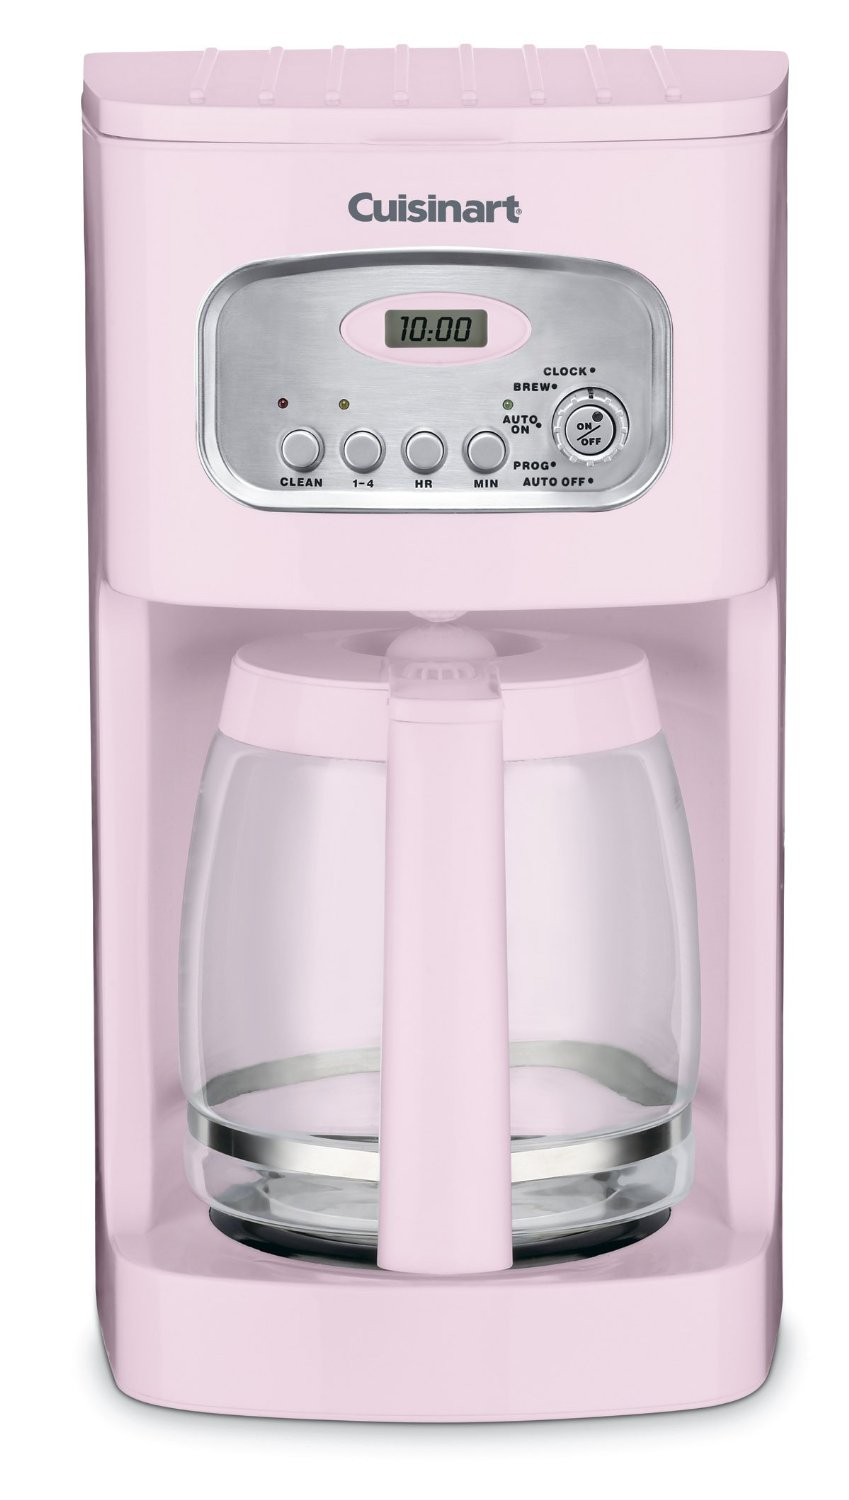 Cuisinart Self-clean Programmable Coffee Brewer (Pink)